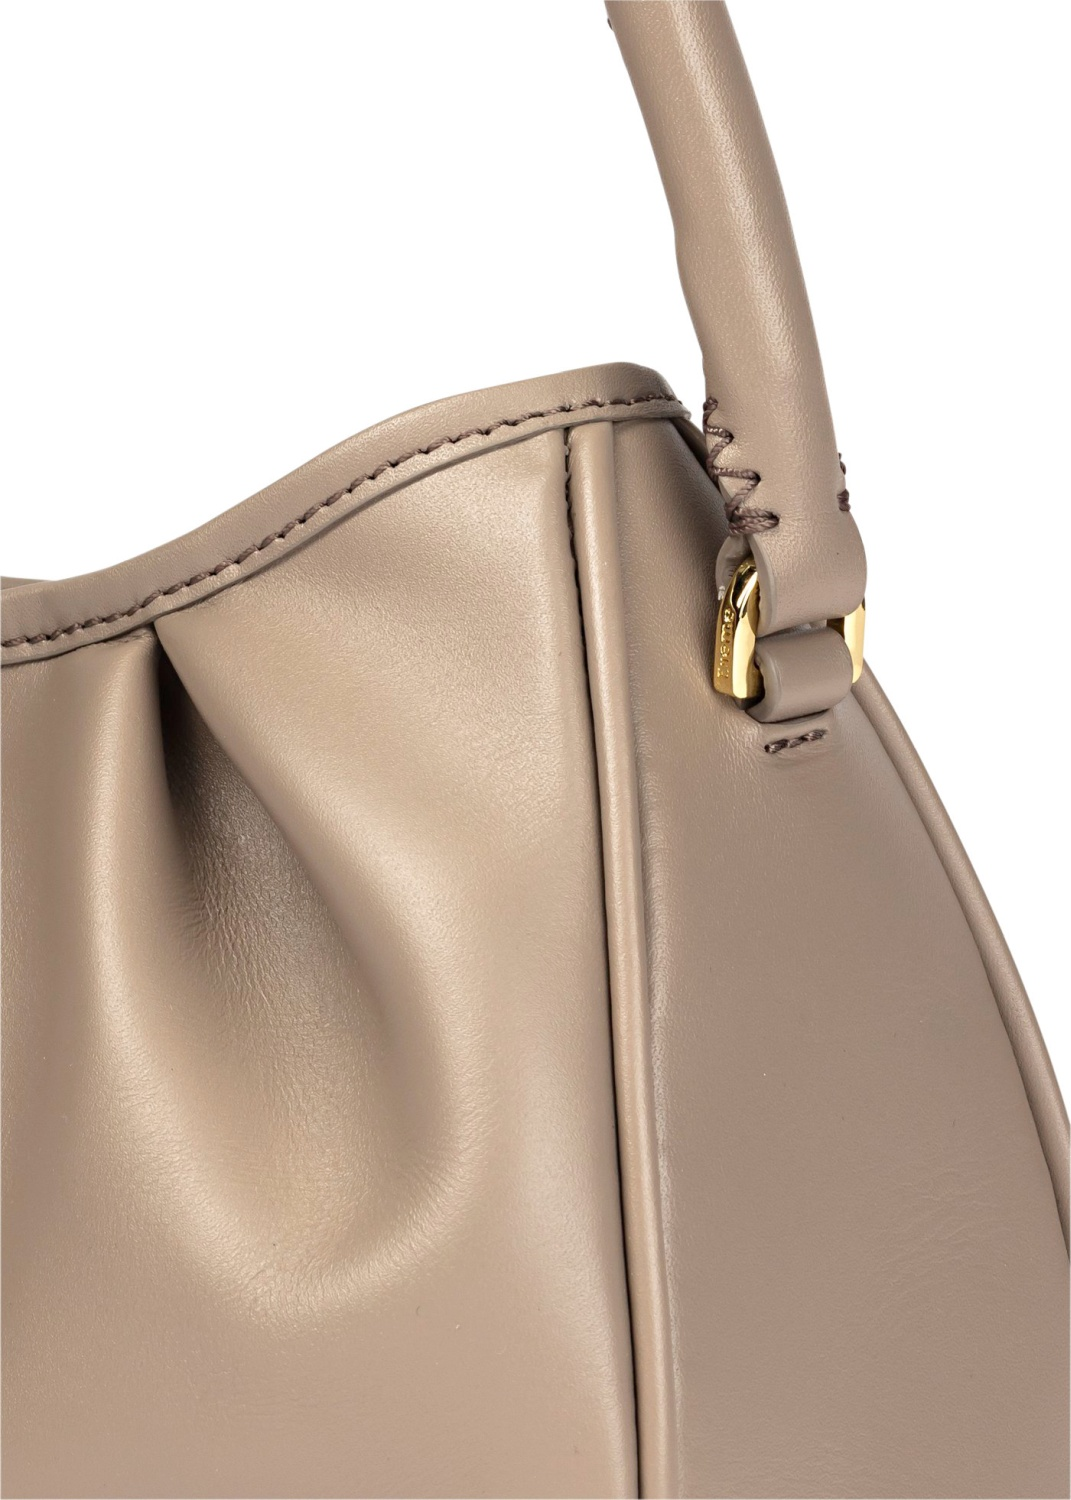 Dimple Leather Baguette Bag image number 2